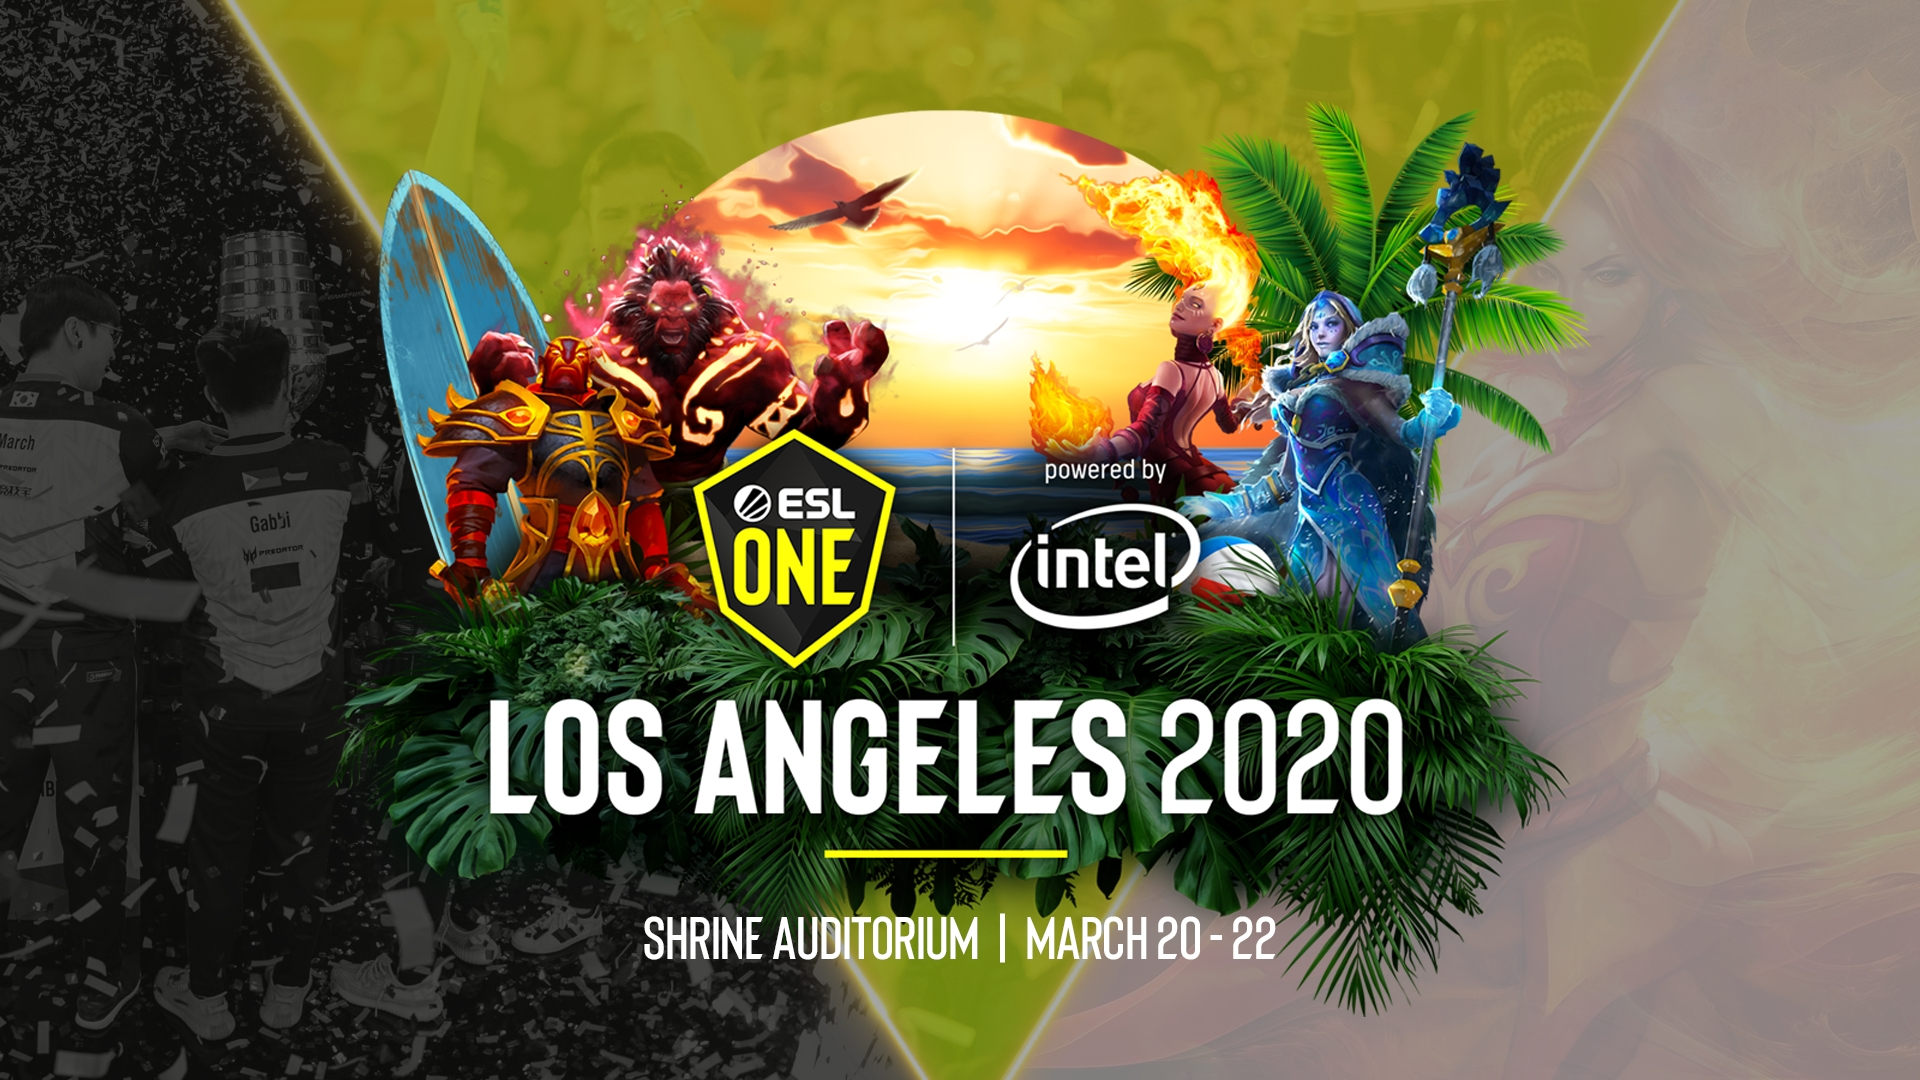 Esl One To Host Dota 2 Major In Los Angeles - Esports Insider